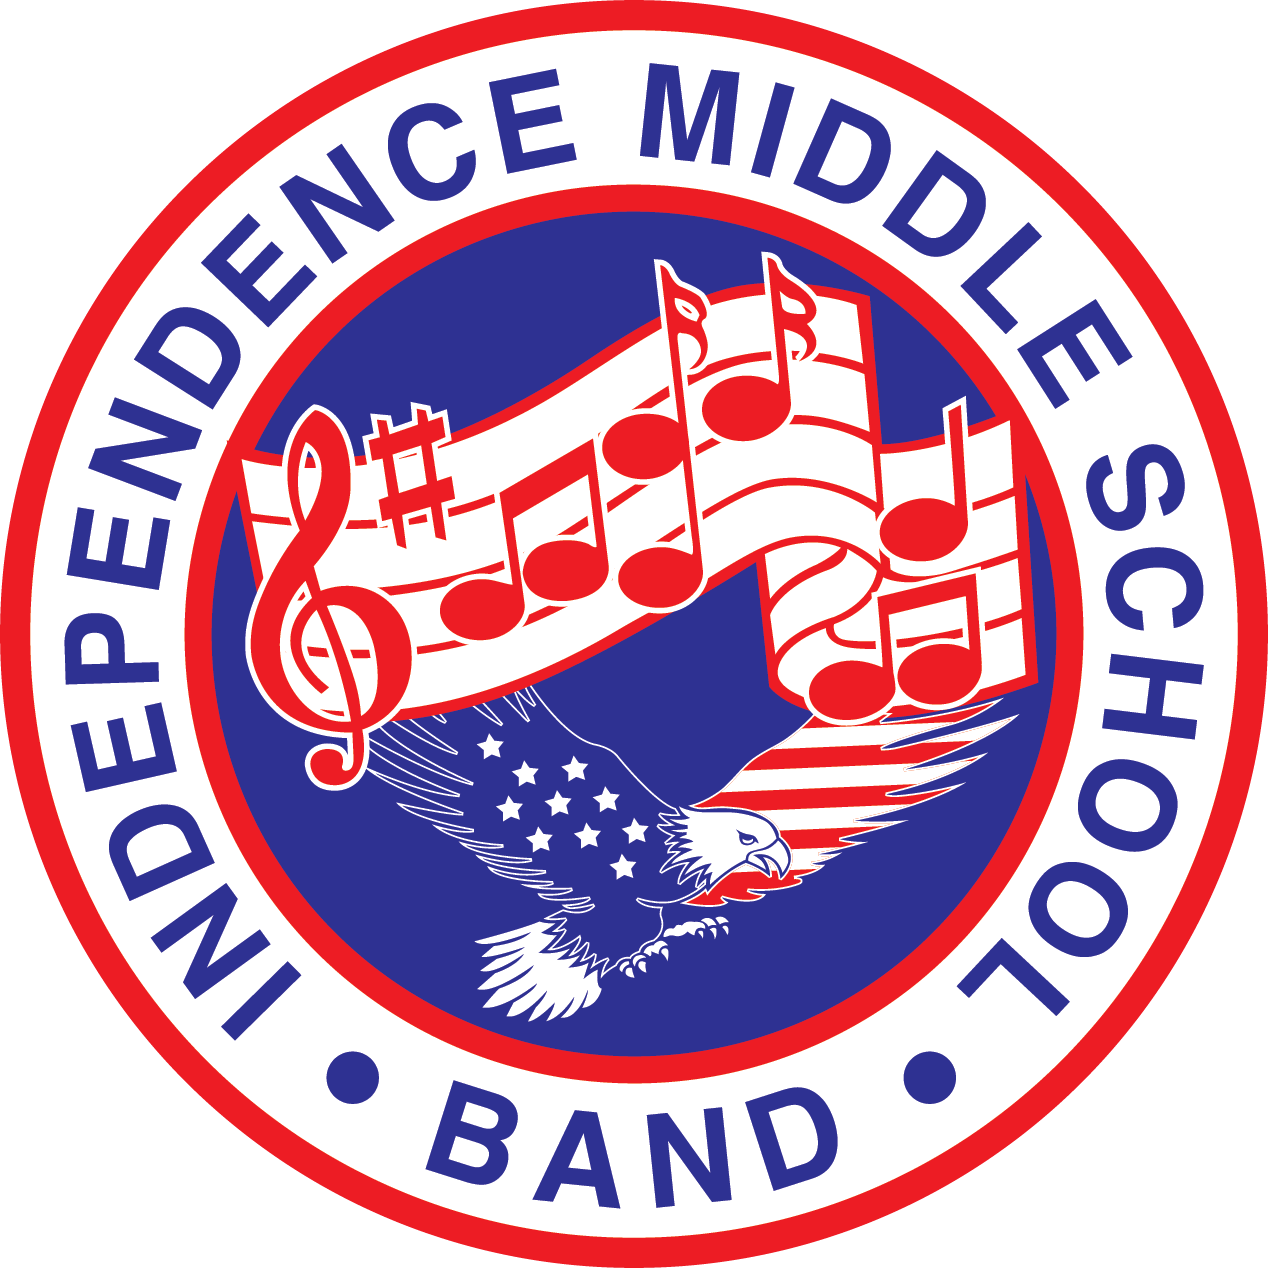 Independence Middle School Band